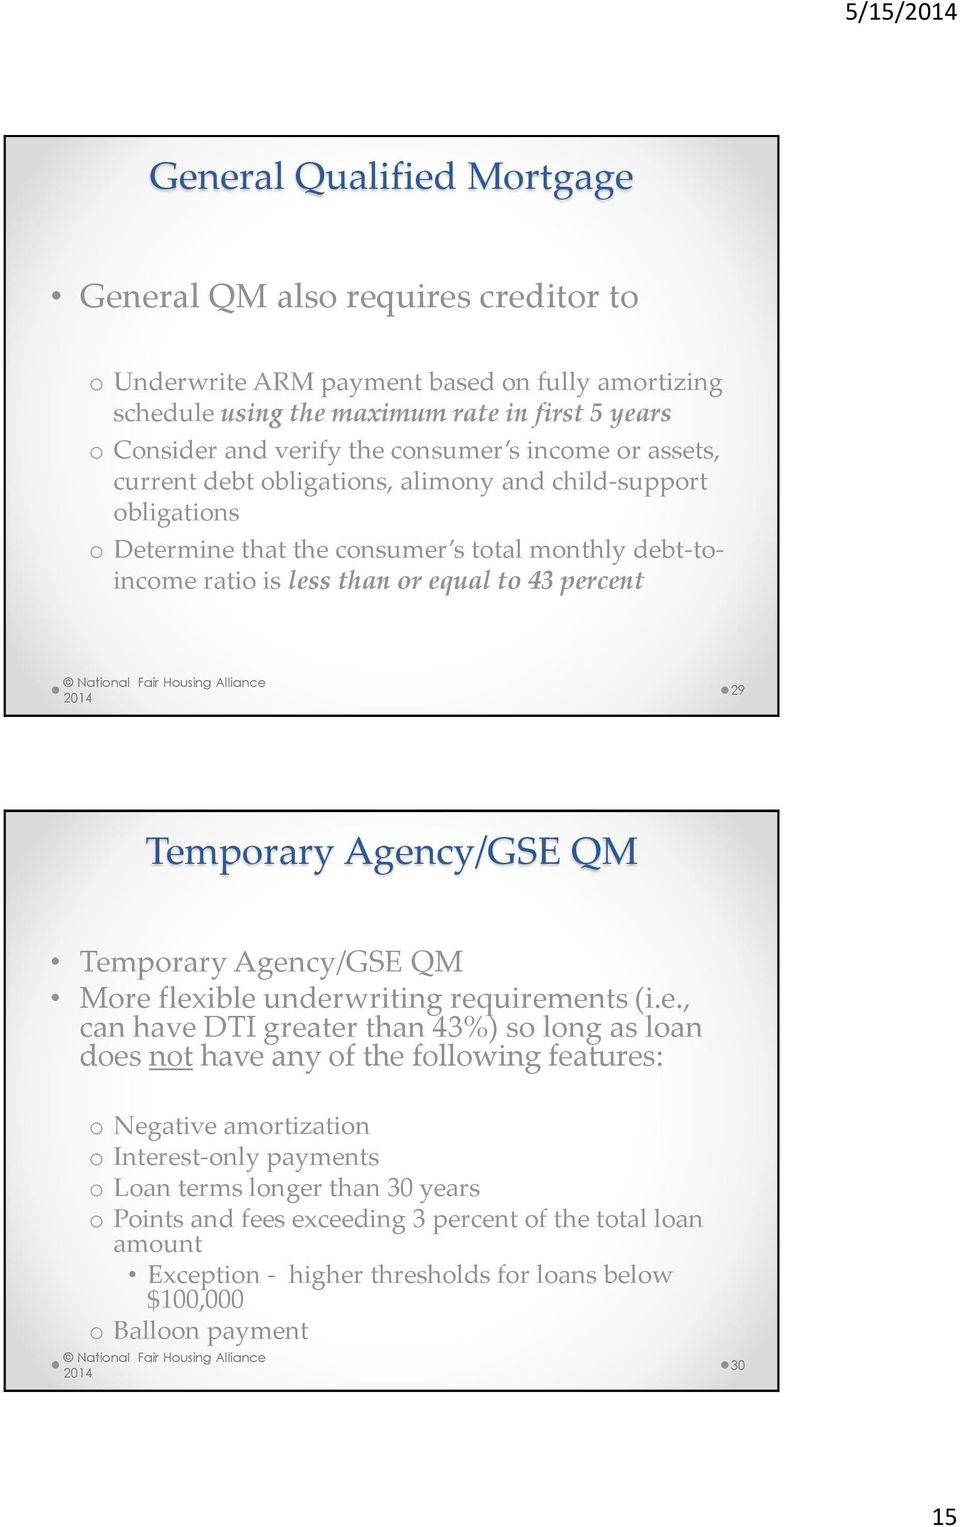 Temporary Agency/GSE QM Temporary Agency/GSE QM More flexible underwriting requirements (i.e., can have DTI greater than 43%) so long as loan does not have any of the following features: o Negative